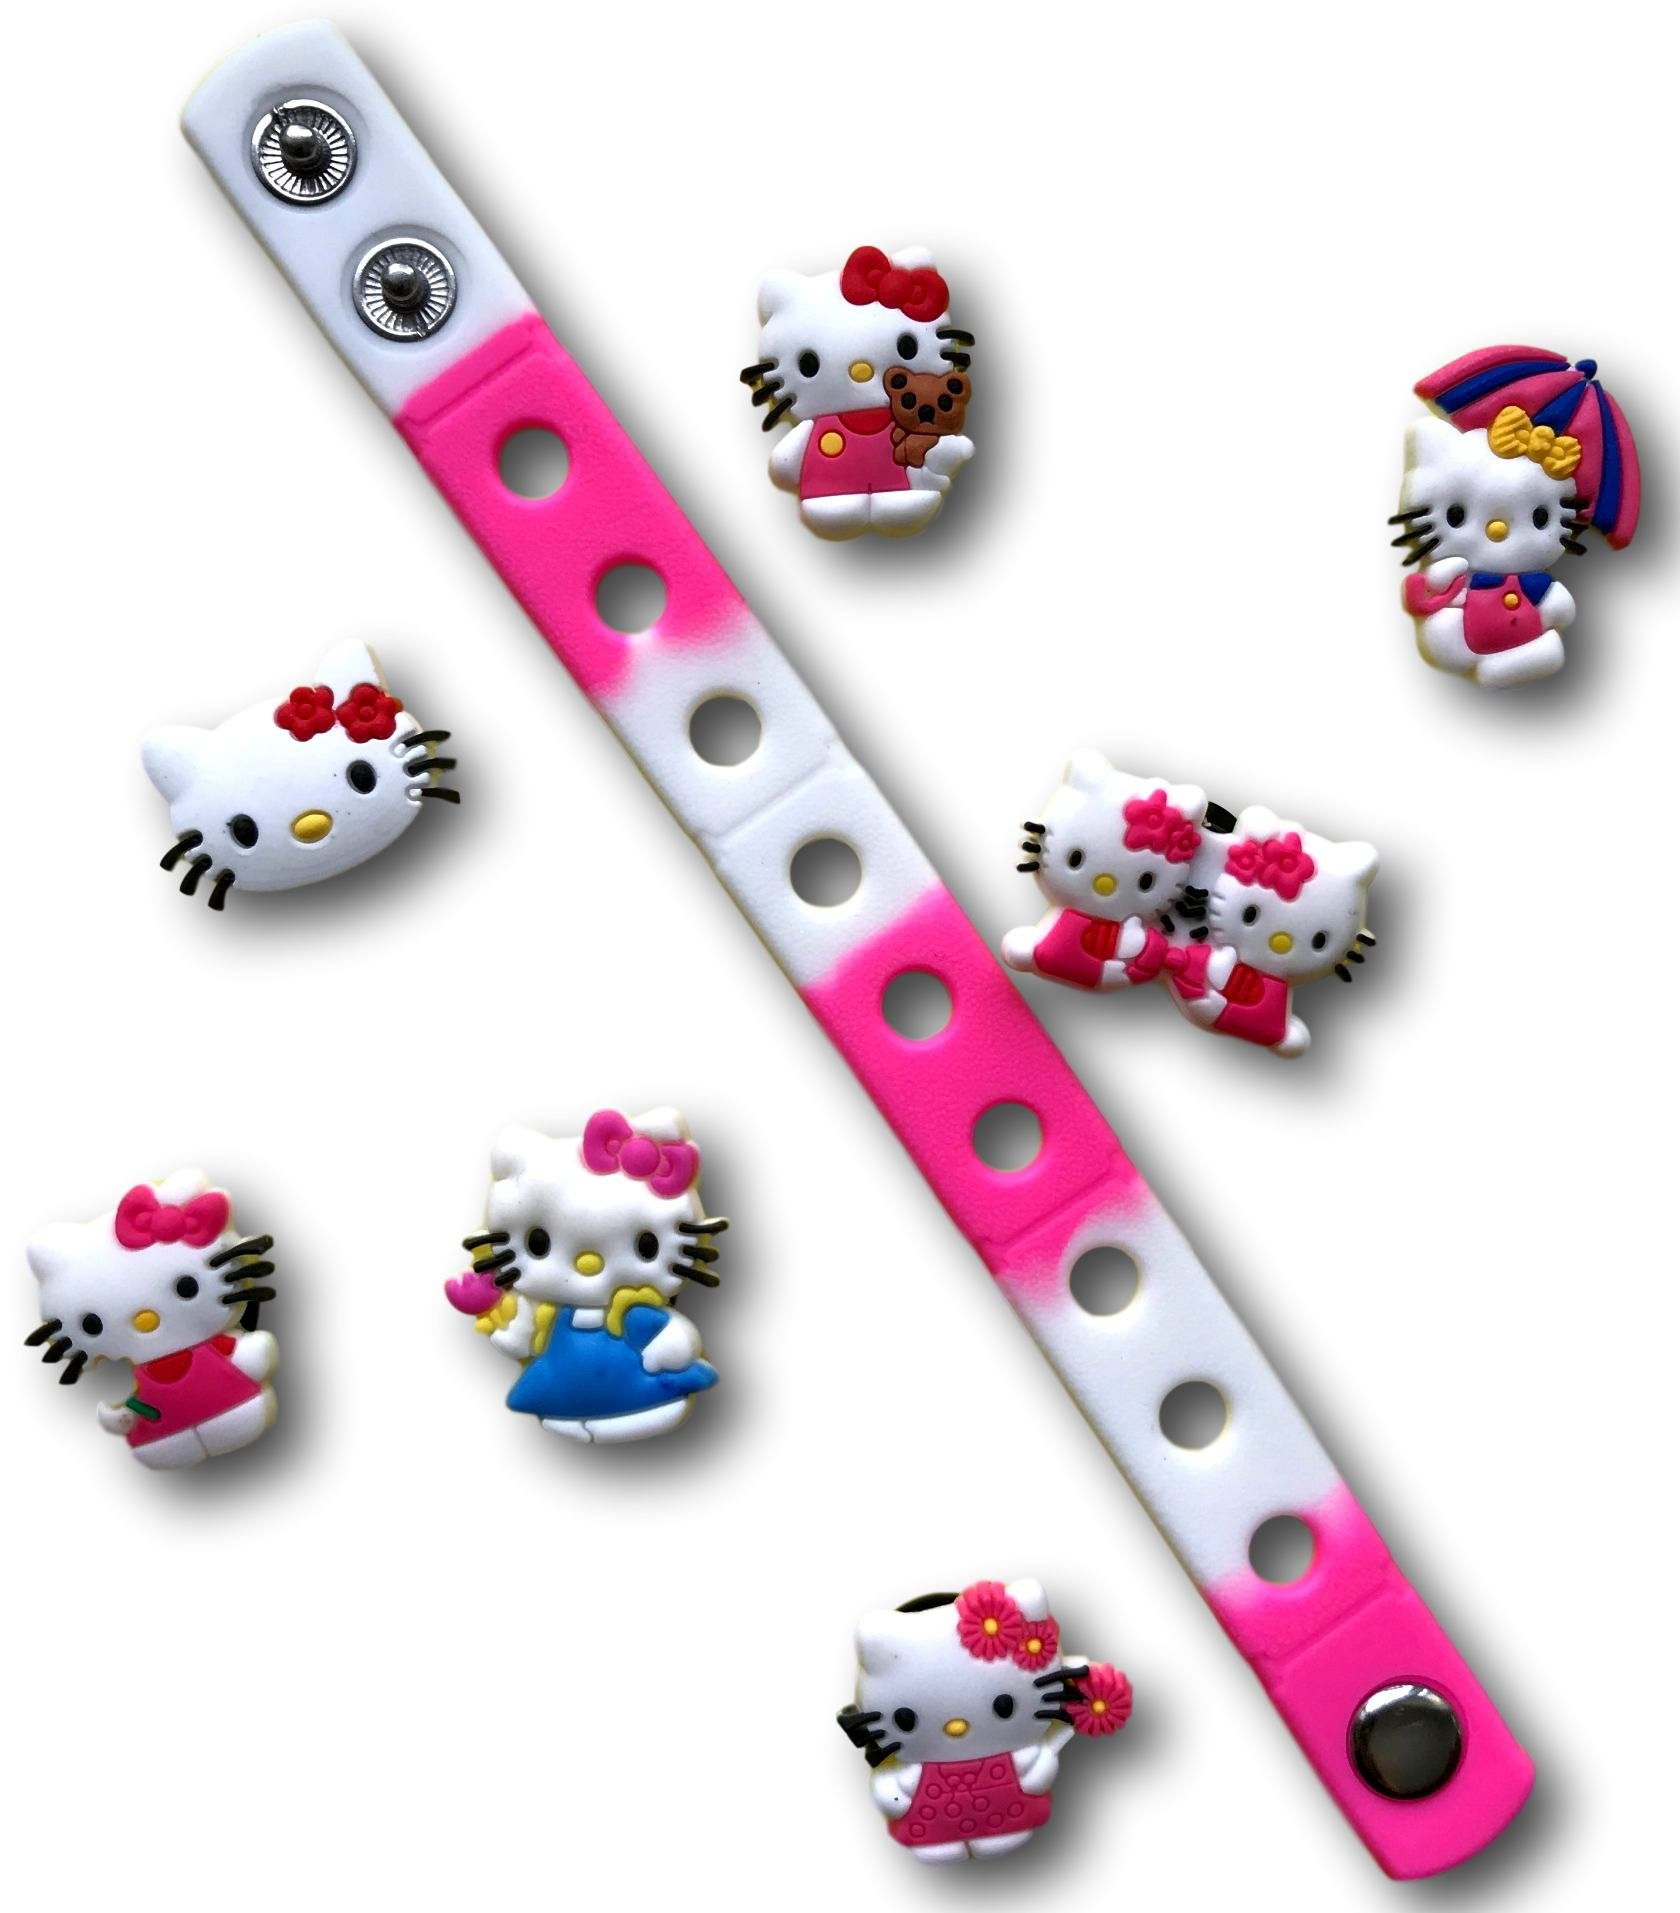 Cute Jibbitz Shoe Charms PVC Plug by Nenistore Accessories for Croc Shoes & Bracelet Wristband Party Gifts   Set of 7 pcs & 01 Silicone Wristband 7 Inches